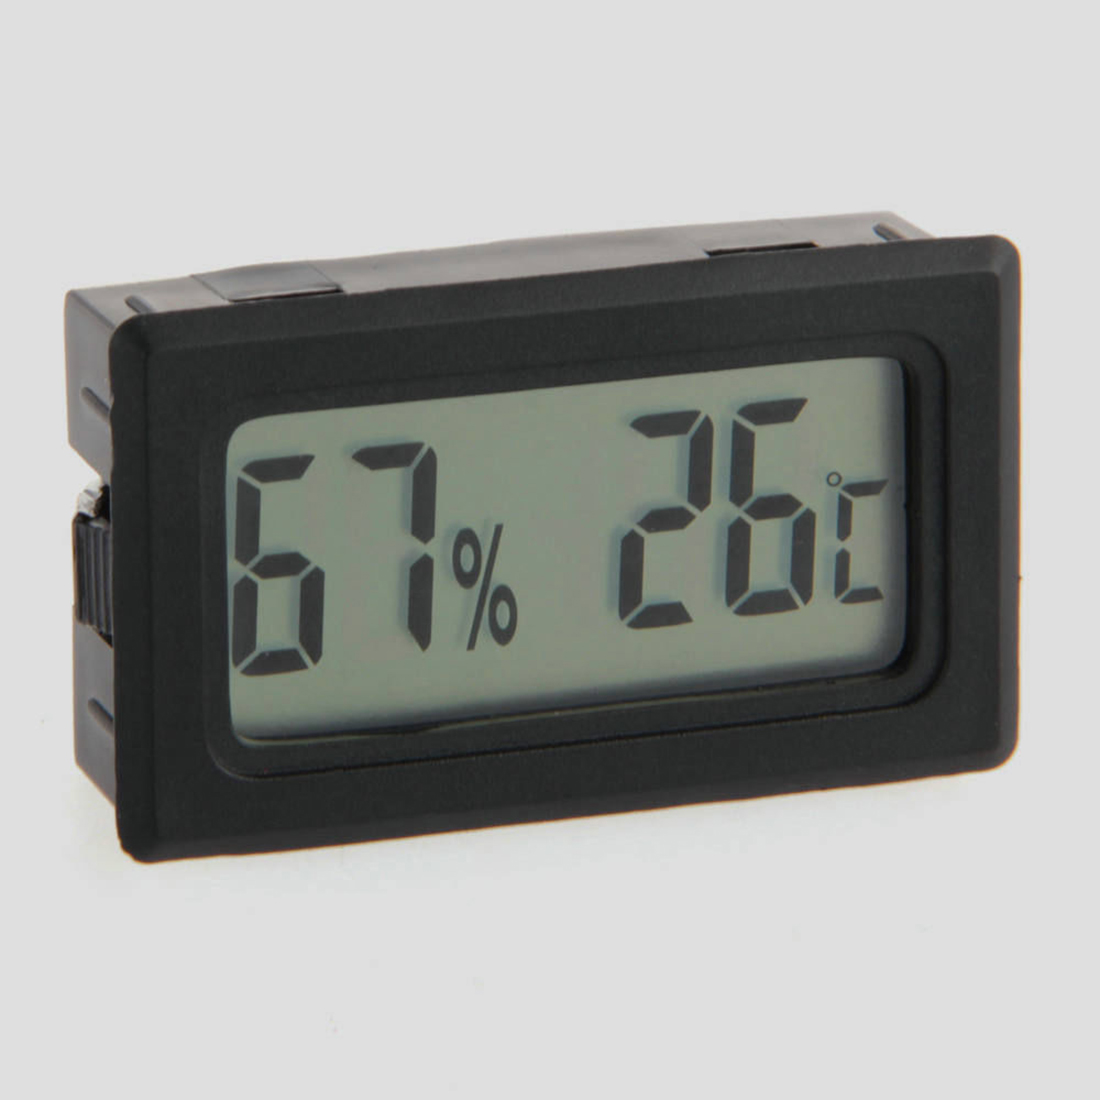 Hot Sale Digital Temperature Thermometer Hygrometer Humidity Meter Vivarium Tank Reptile Supplies Free Shipping(China (Mainland))